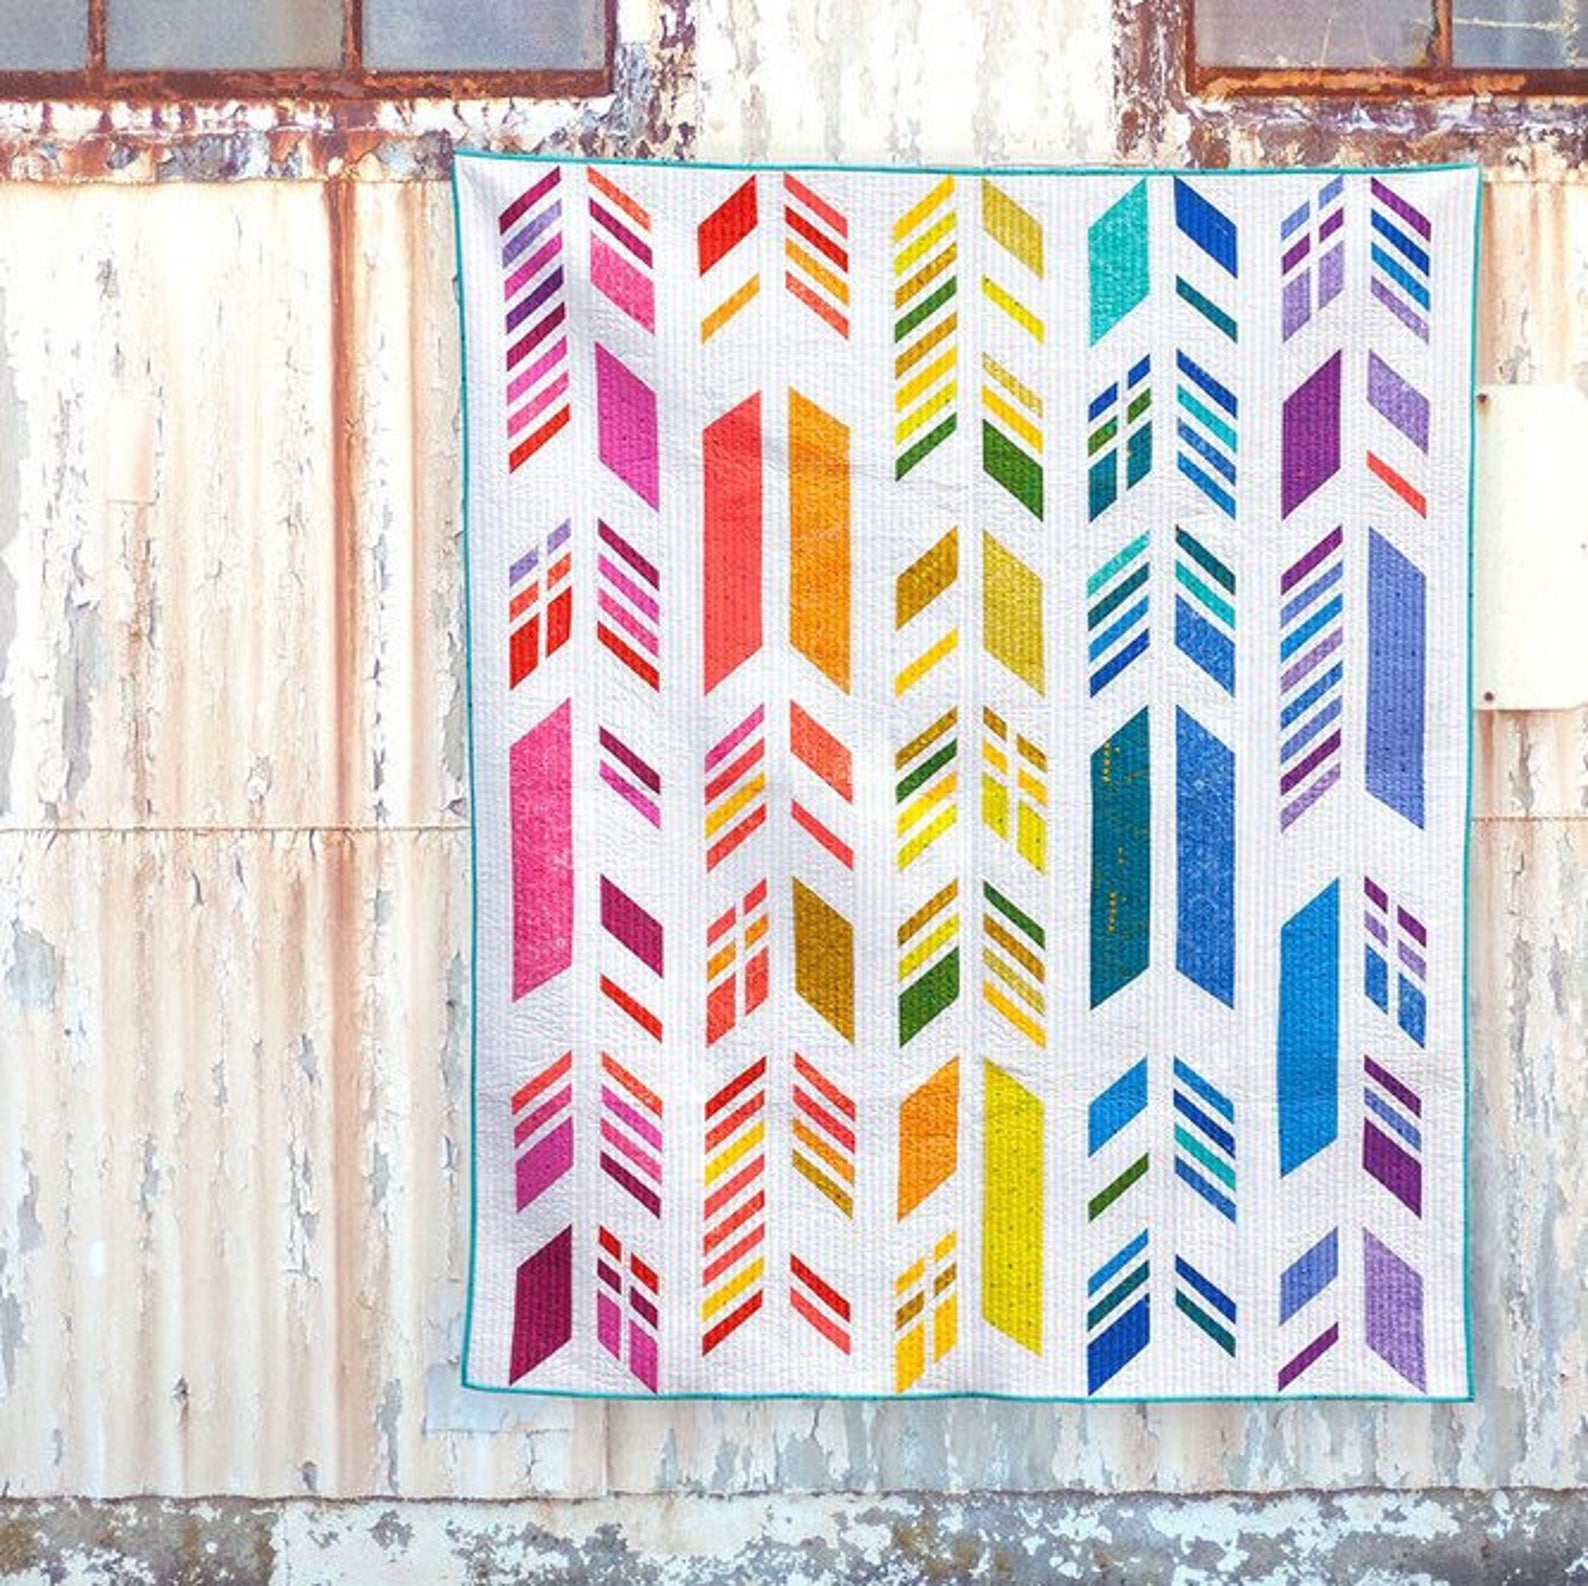 Feathers quilt kit